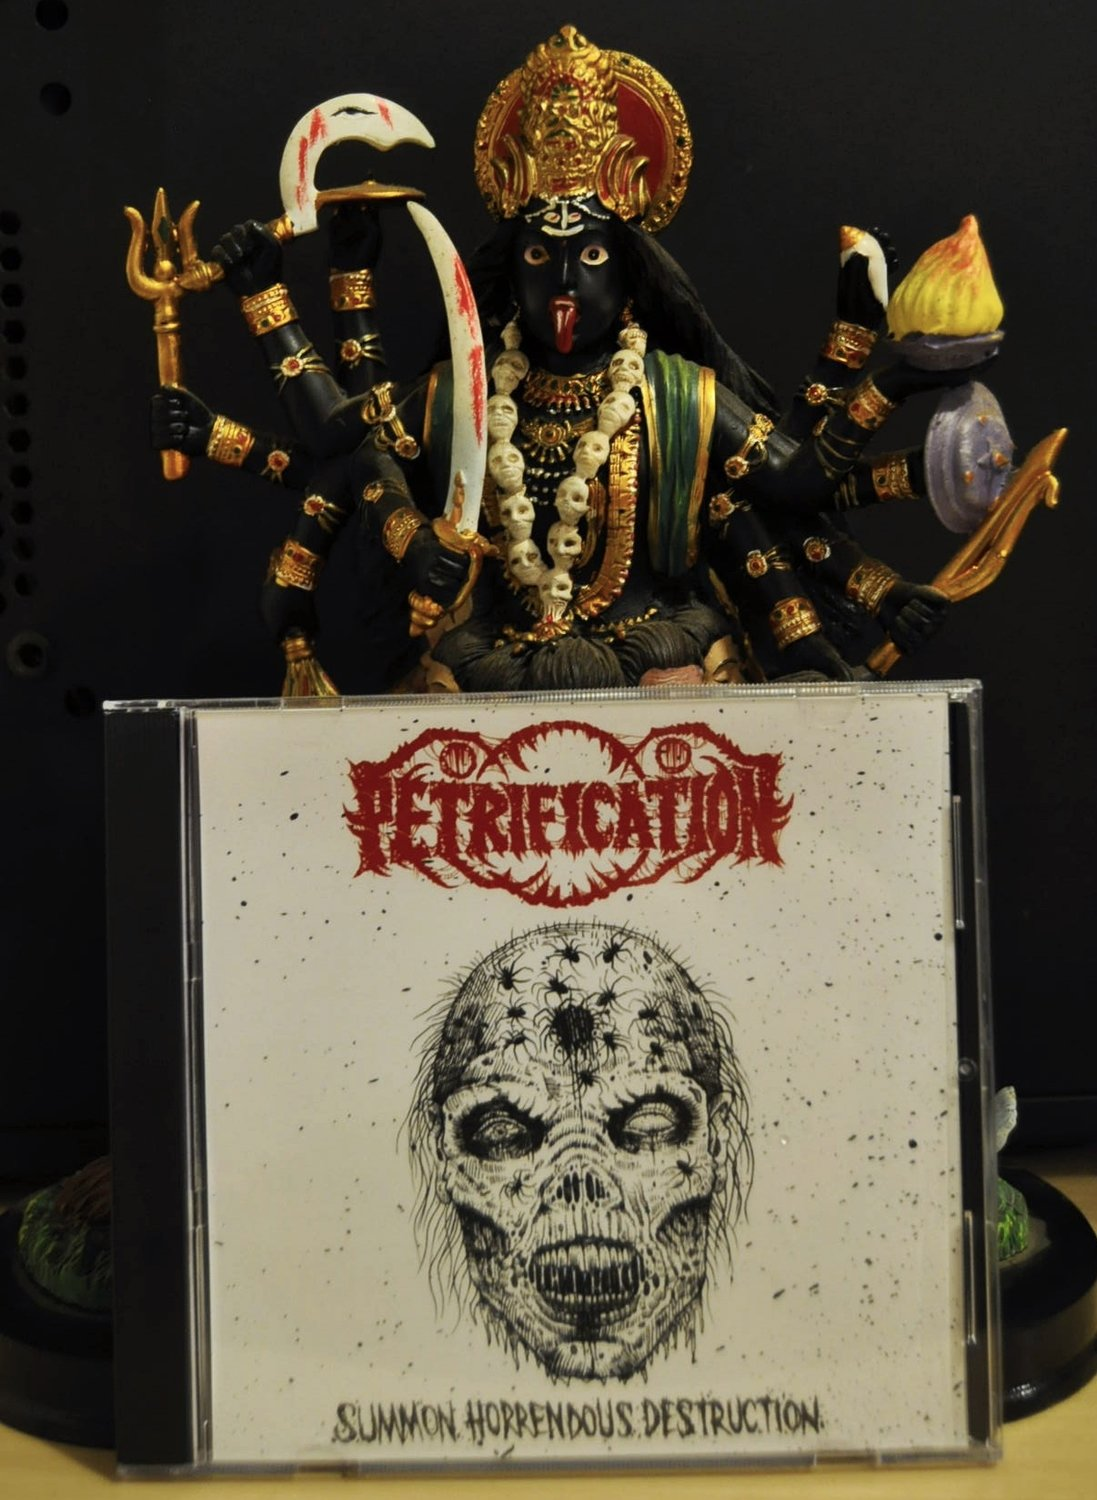 Petrification 'SUMMON HORRENDOUS DESTRUCTION' CD